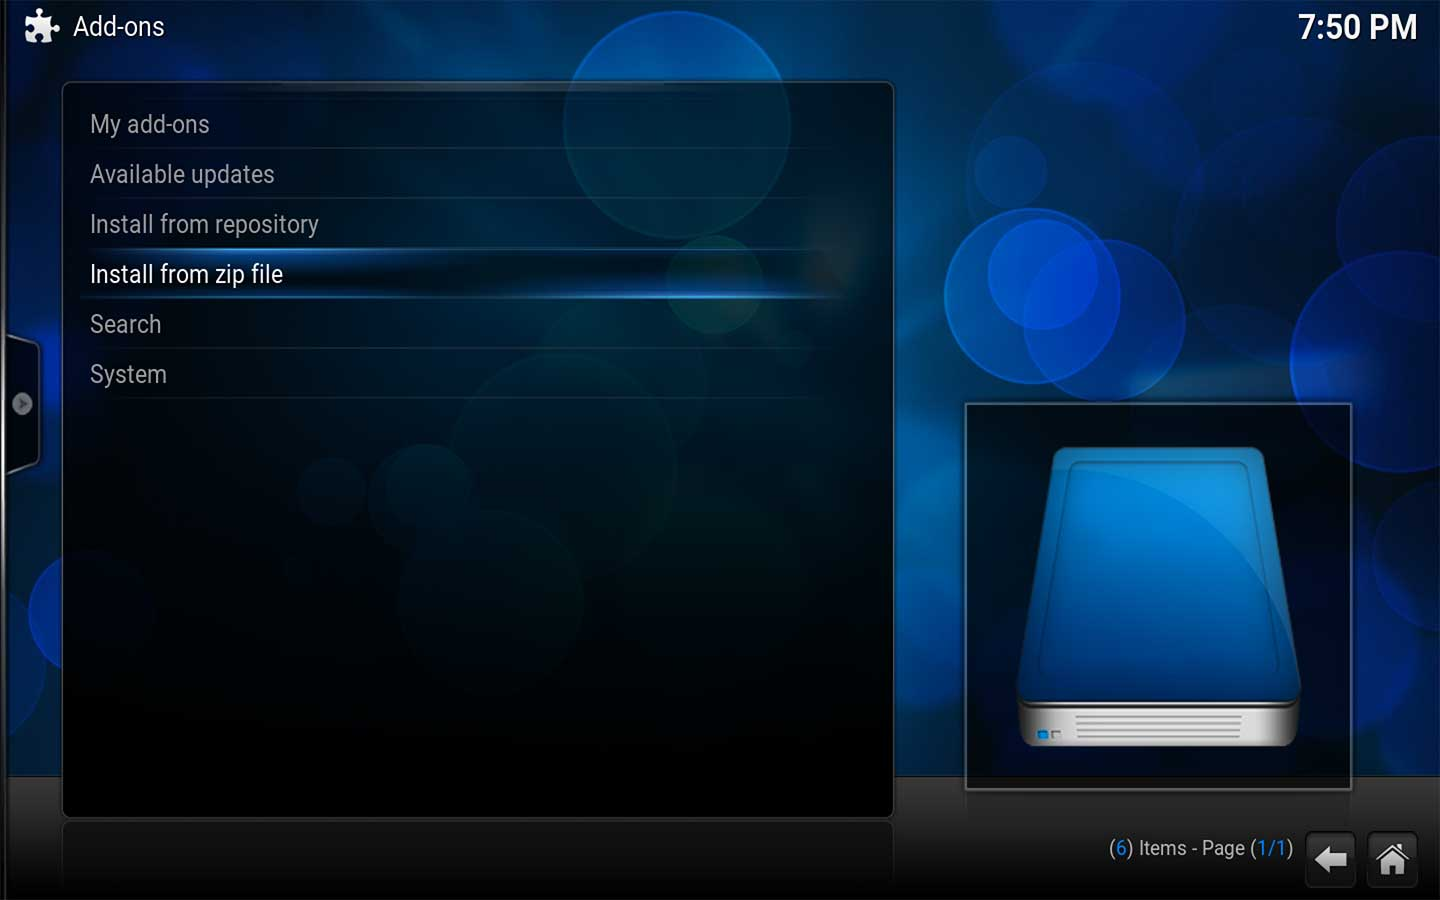 Step 3 To install Phillips Hue in Kodi